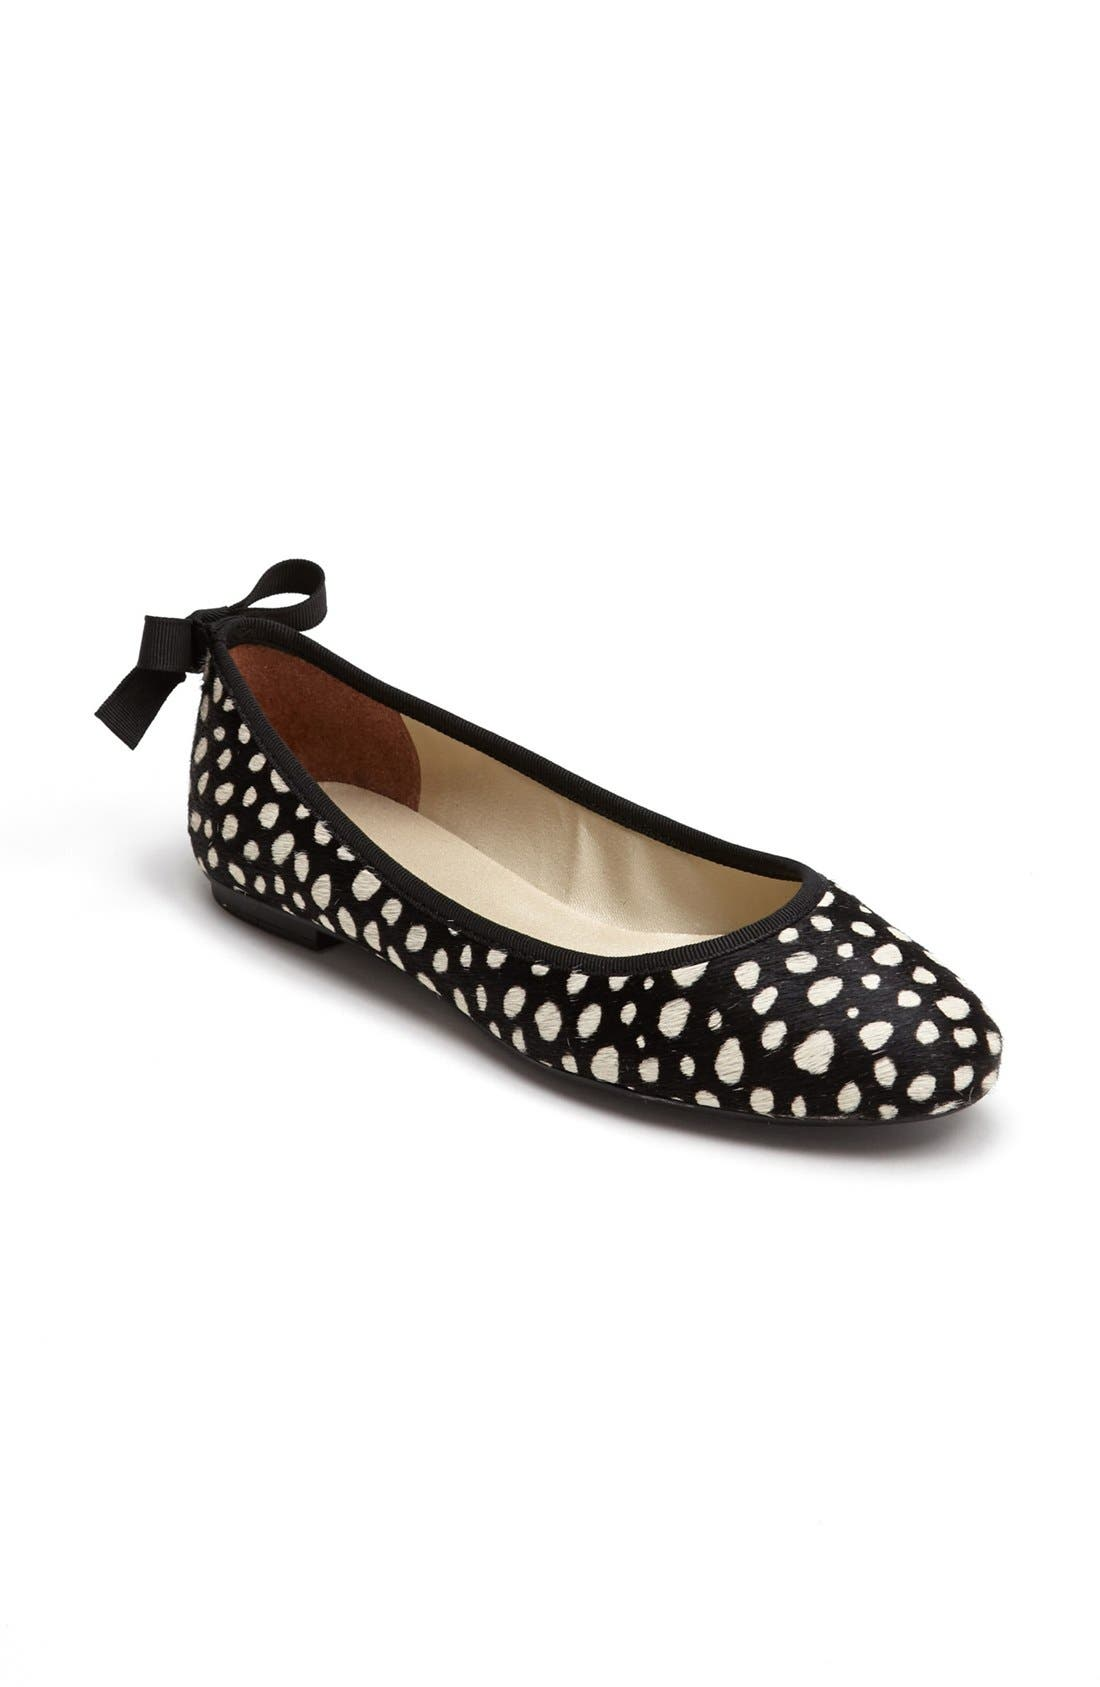 Alternate Image 1 Selected - French Sole 'Gale' Ballet Flat